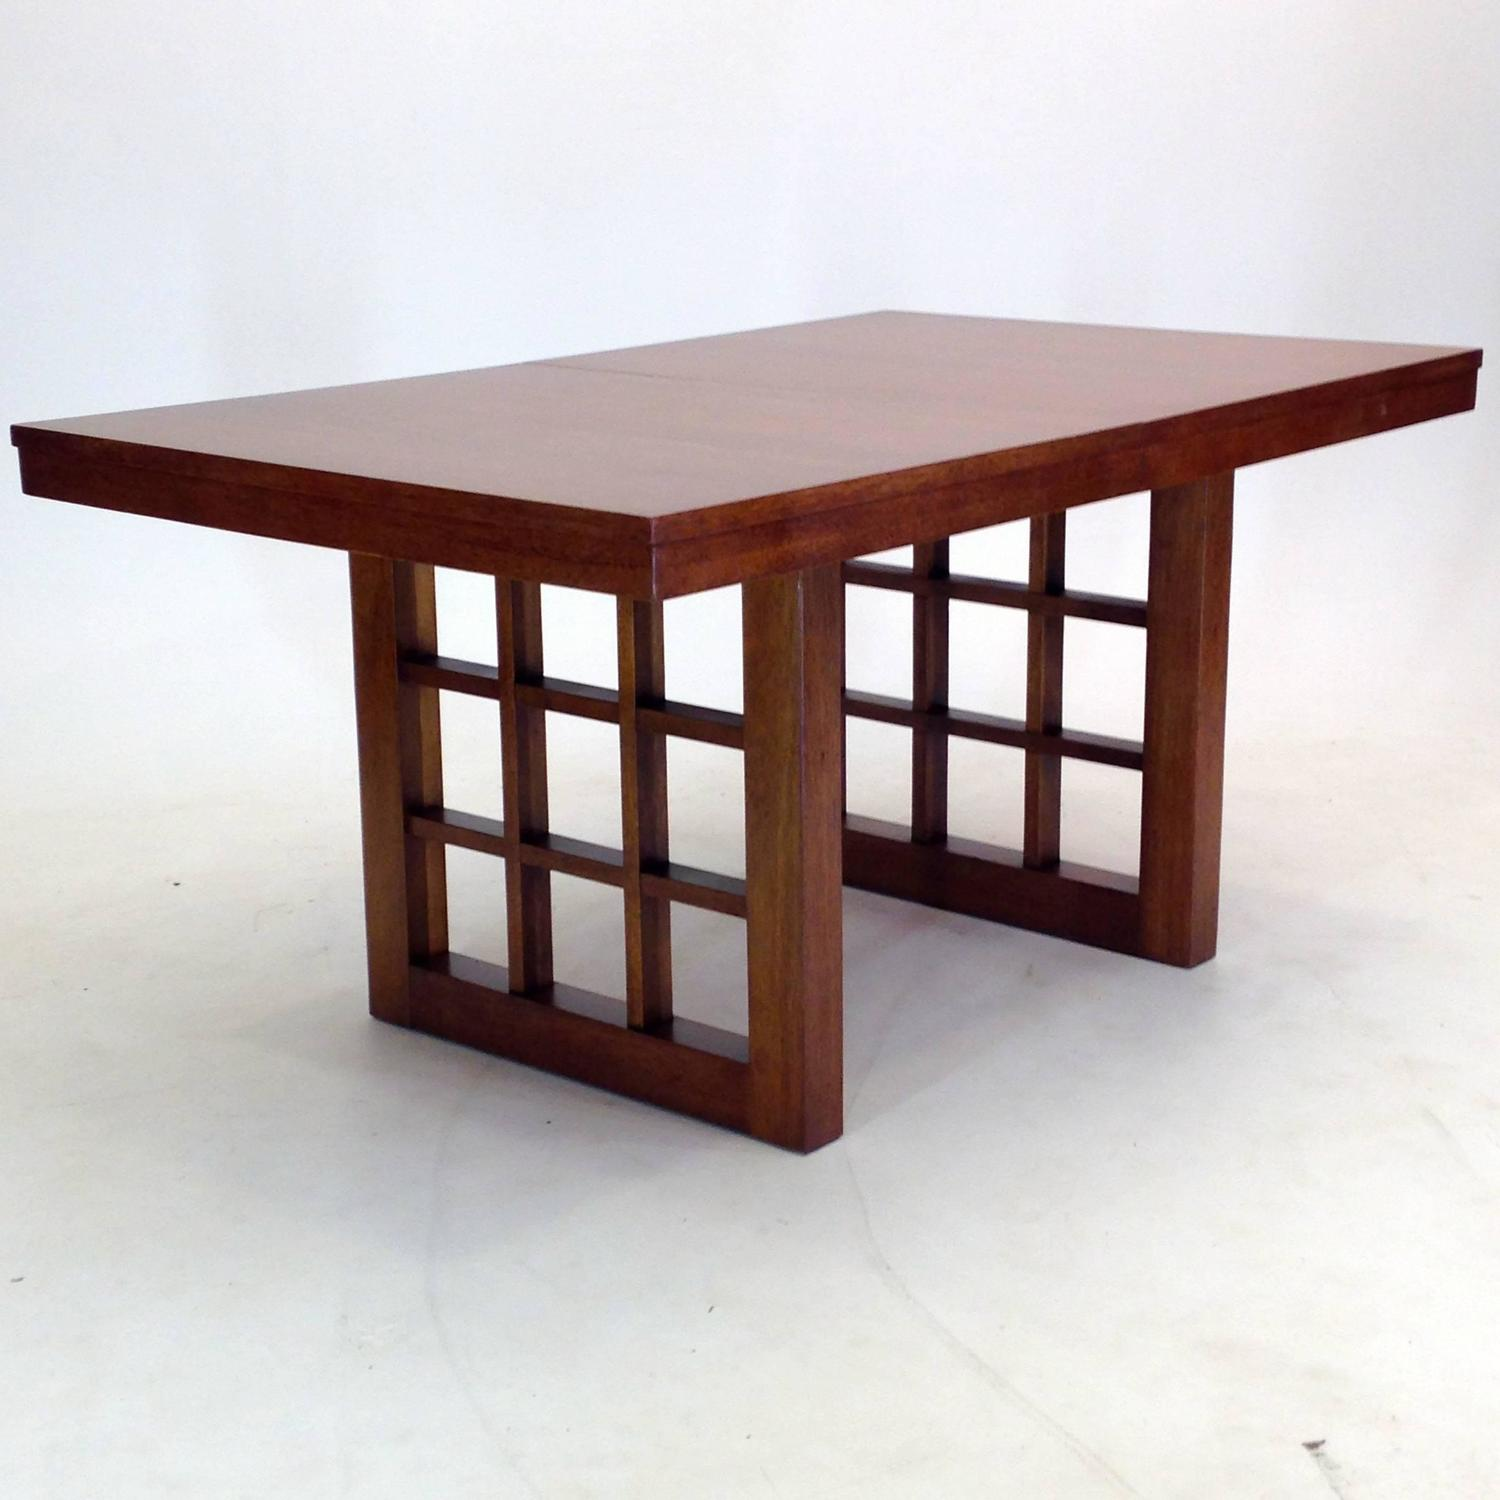 Exquisite eight foot dining table by merton l gurshun in for 7 foot dining room table